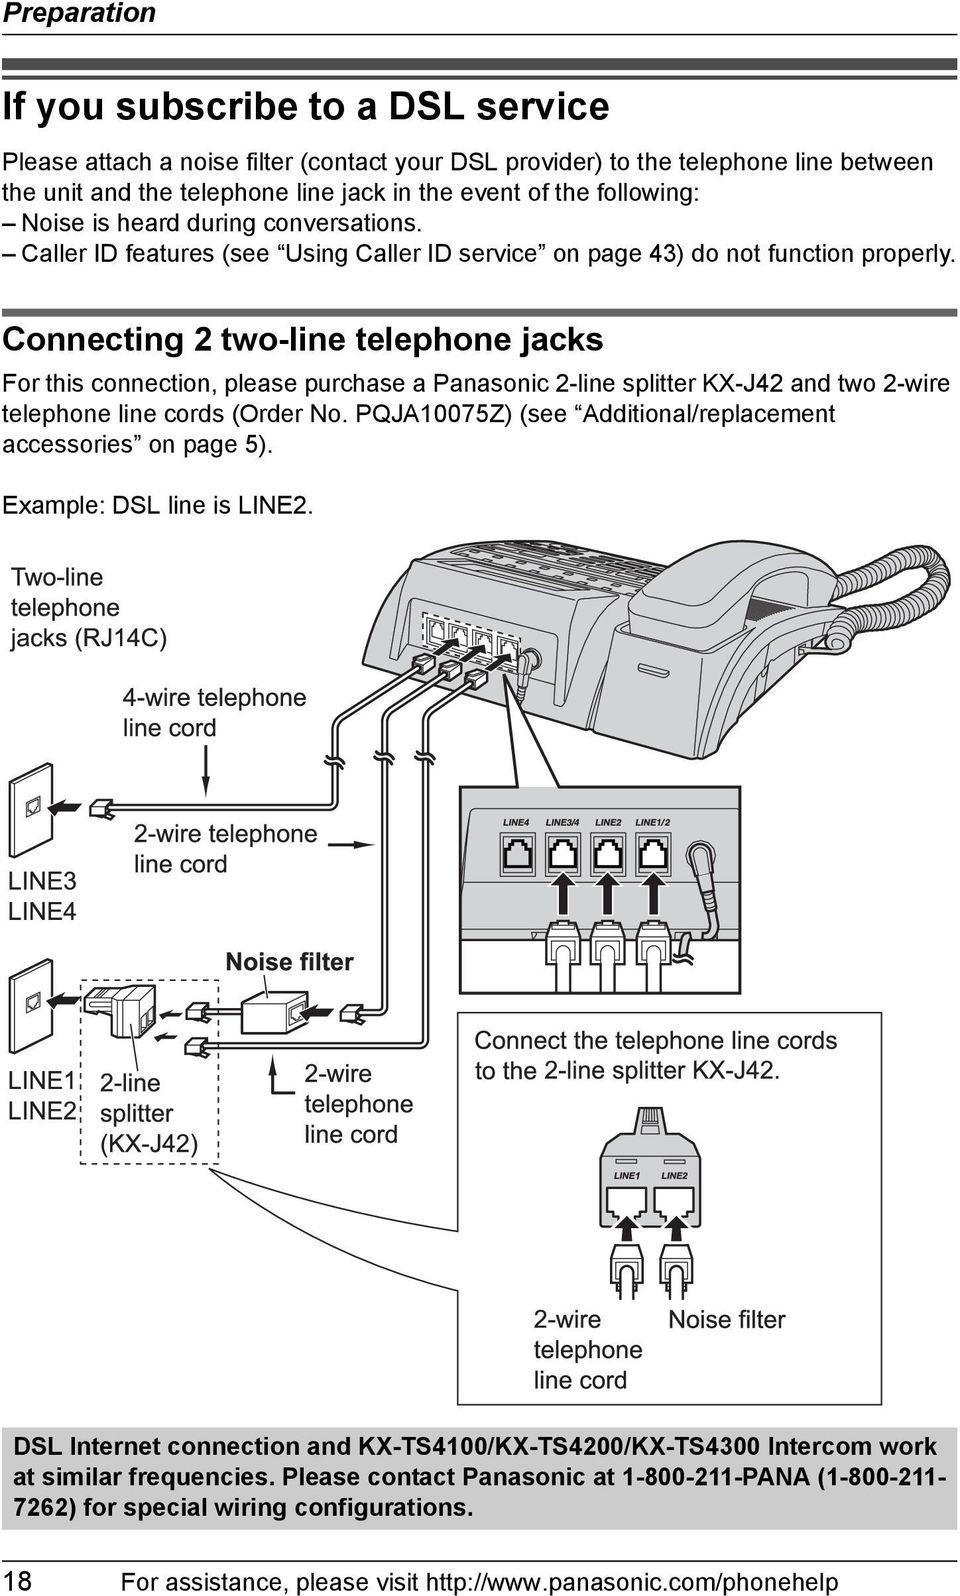 Operating Instructions Pdf 2 Line Phone Telephone Splitter Wiring Diagram Connecting Two Jacks For This Connection Please Purchase A Panasonic